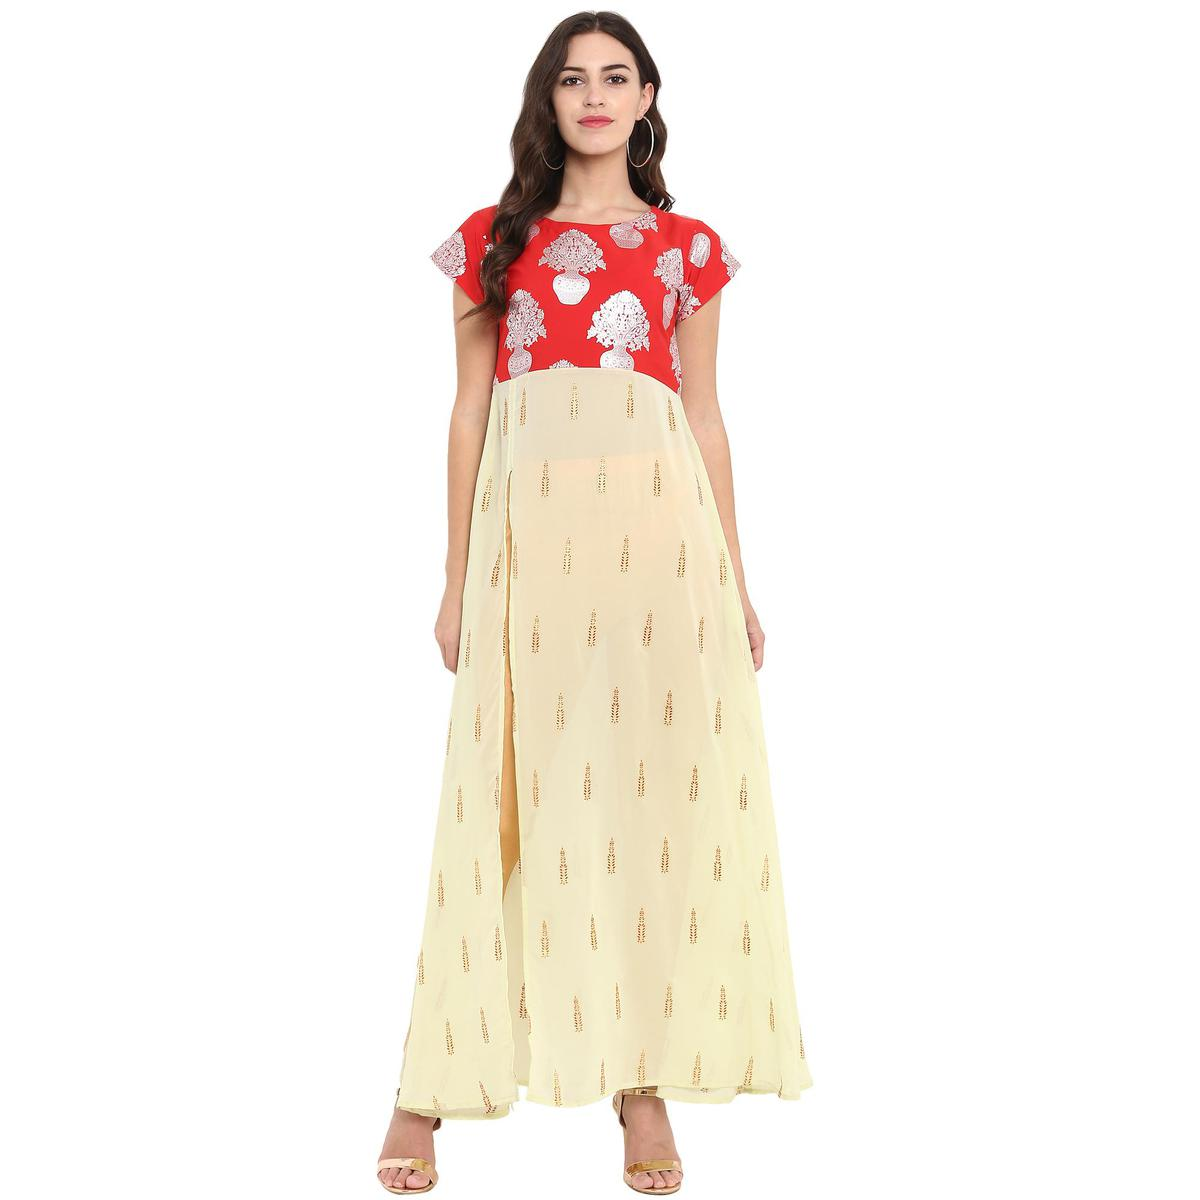 Ahalyaa - Red-Yellow Colored Casual Foil Printed Crepe-Georgette Kurti